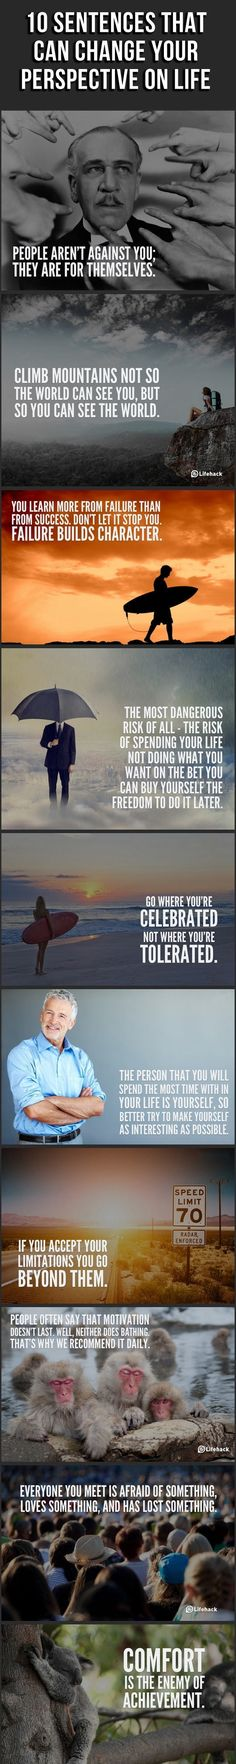 Ten sentences that Can Change Your Perspective On LIFE!